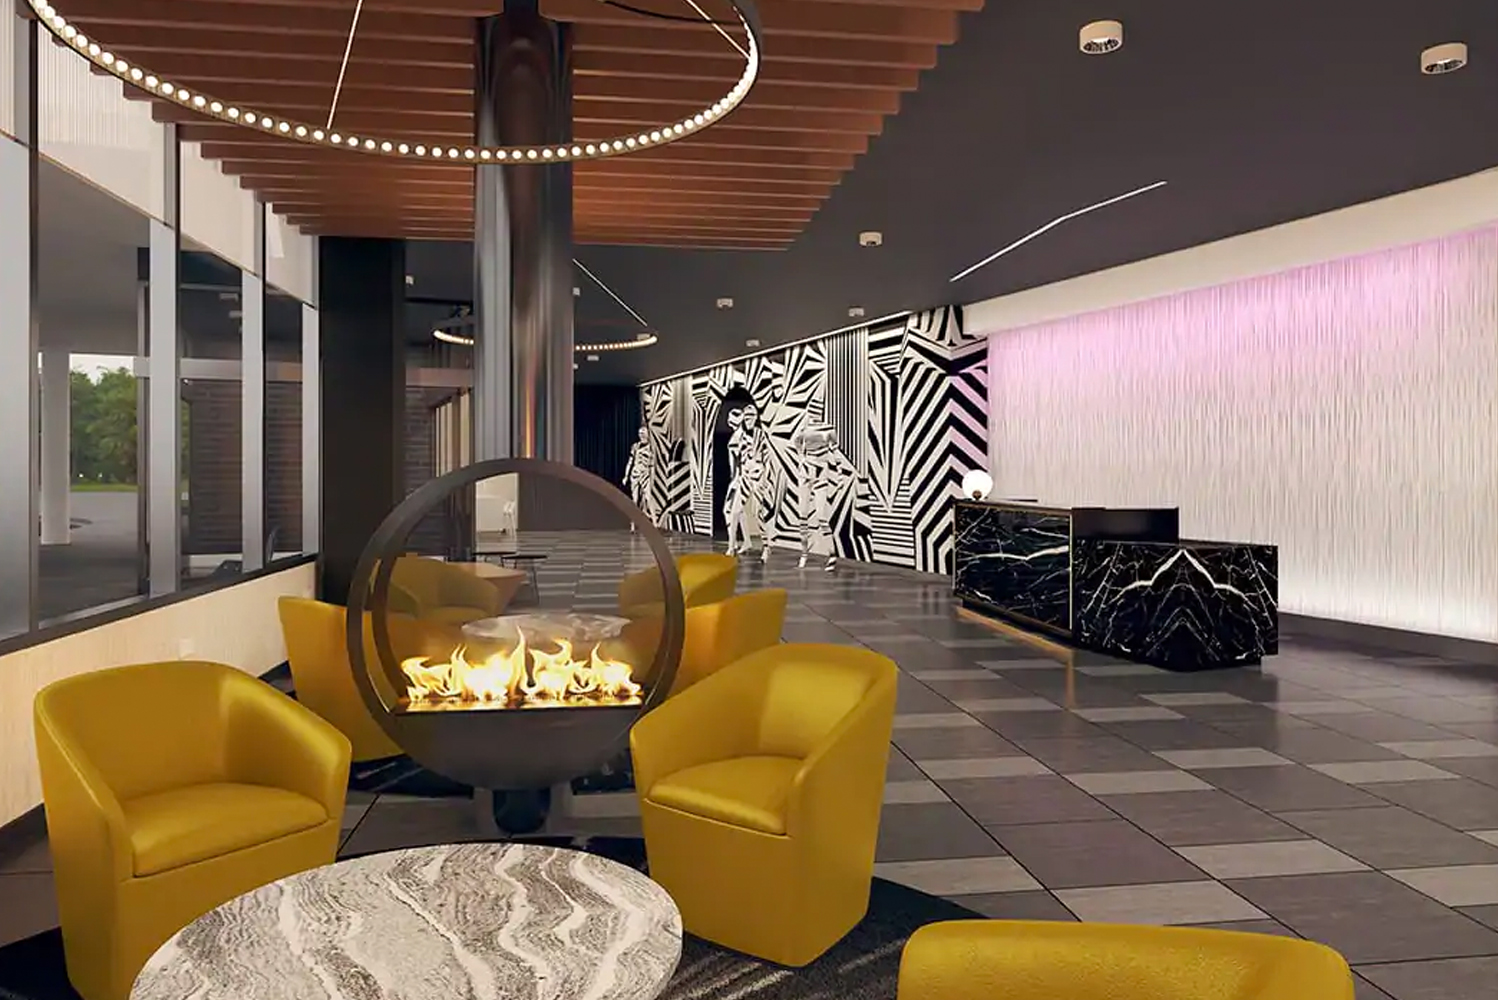 Rosemont's first boutique hotel, The Rose Hotel Chicago/O'Hare, Tapestry Collection by Hilton will open at 5200 Pearl Street this November.